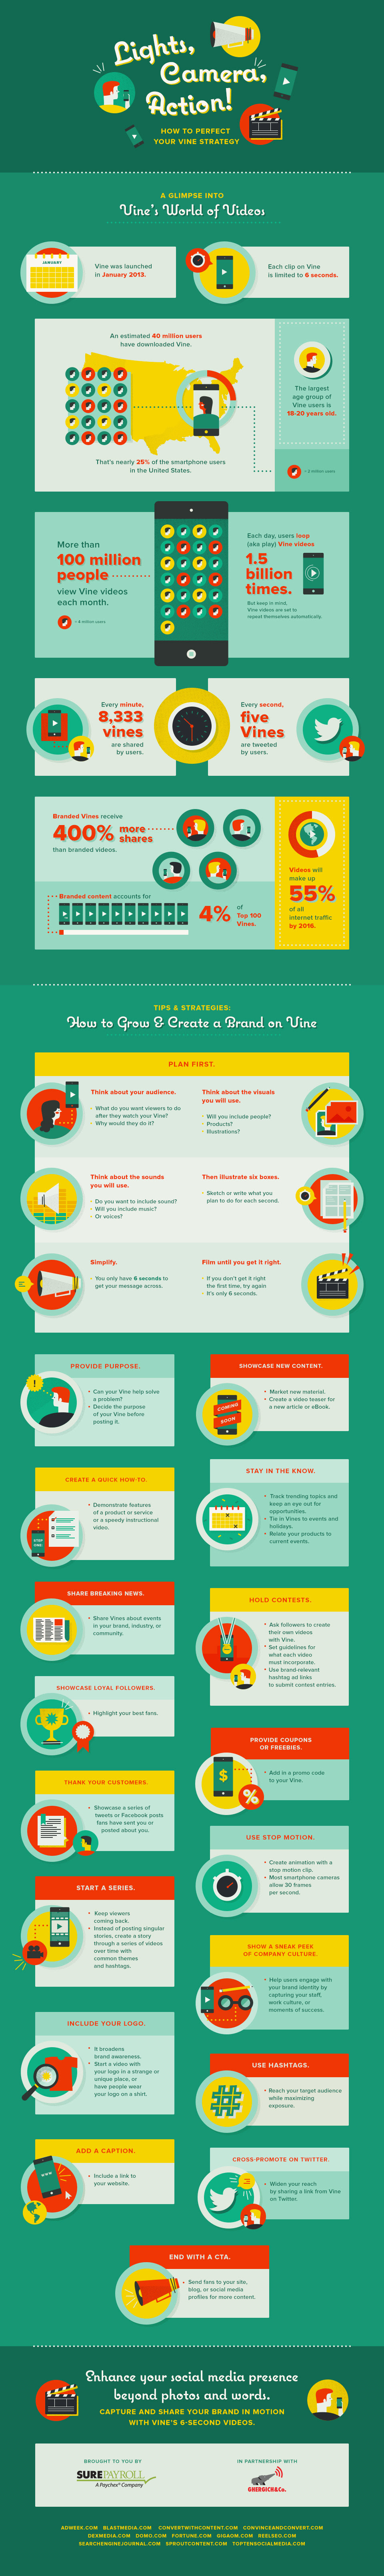 #SocialMedia Marketing: How to Perfect Your Vine Strategy - #infographic